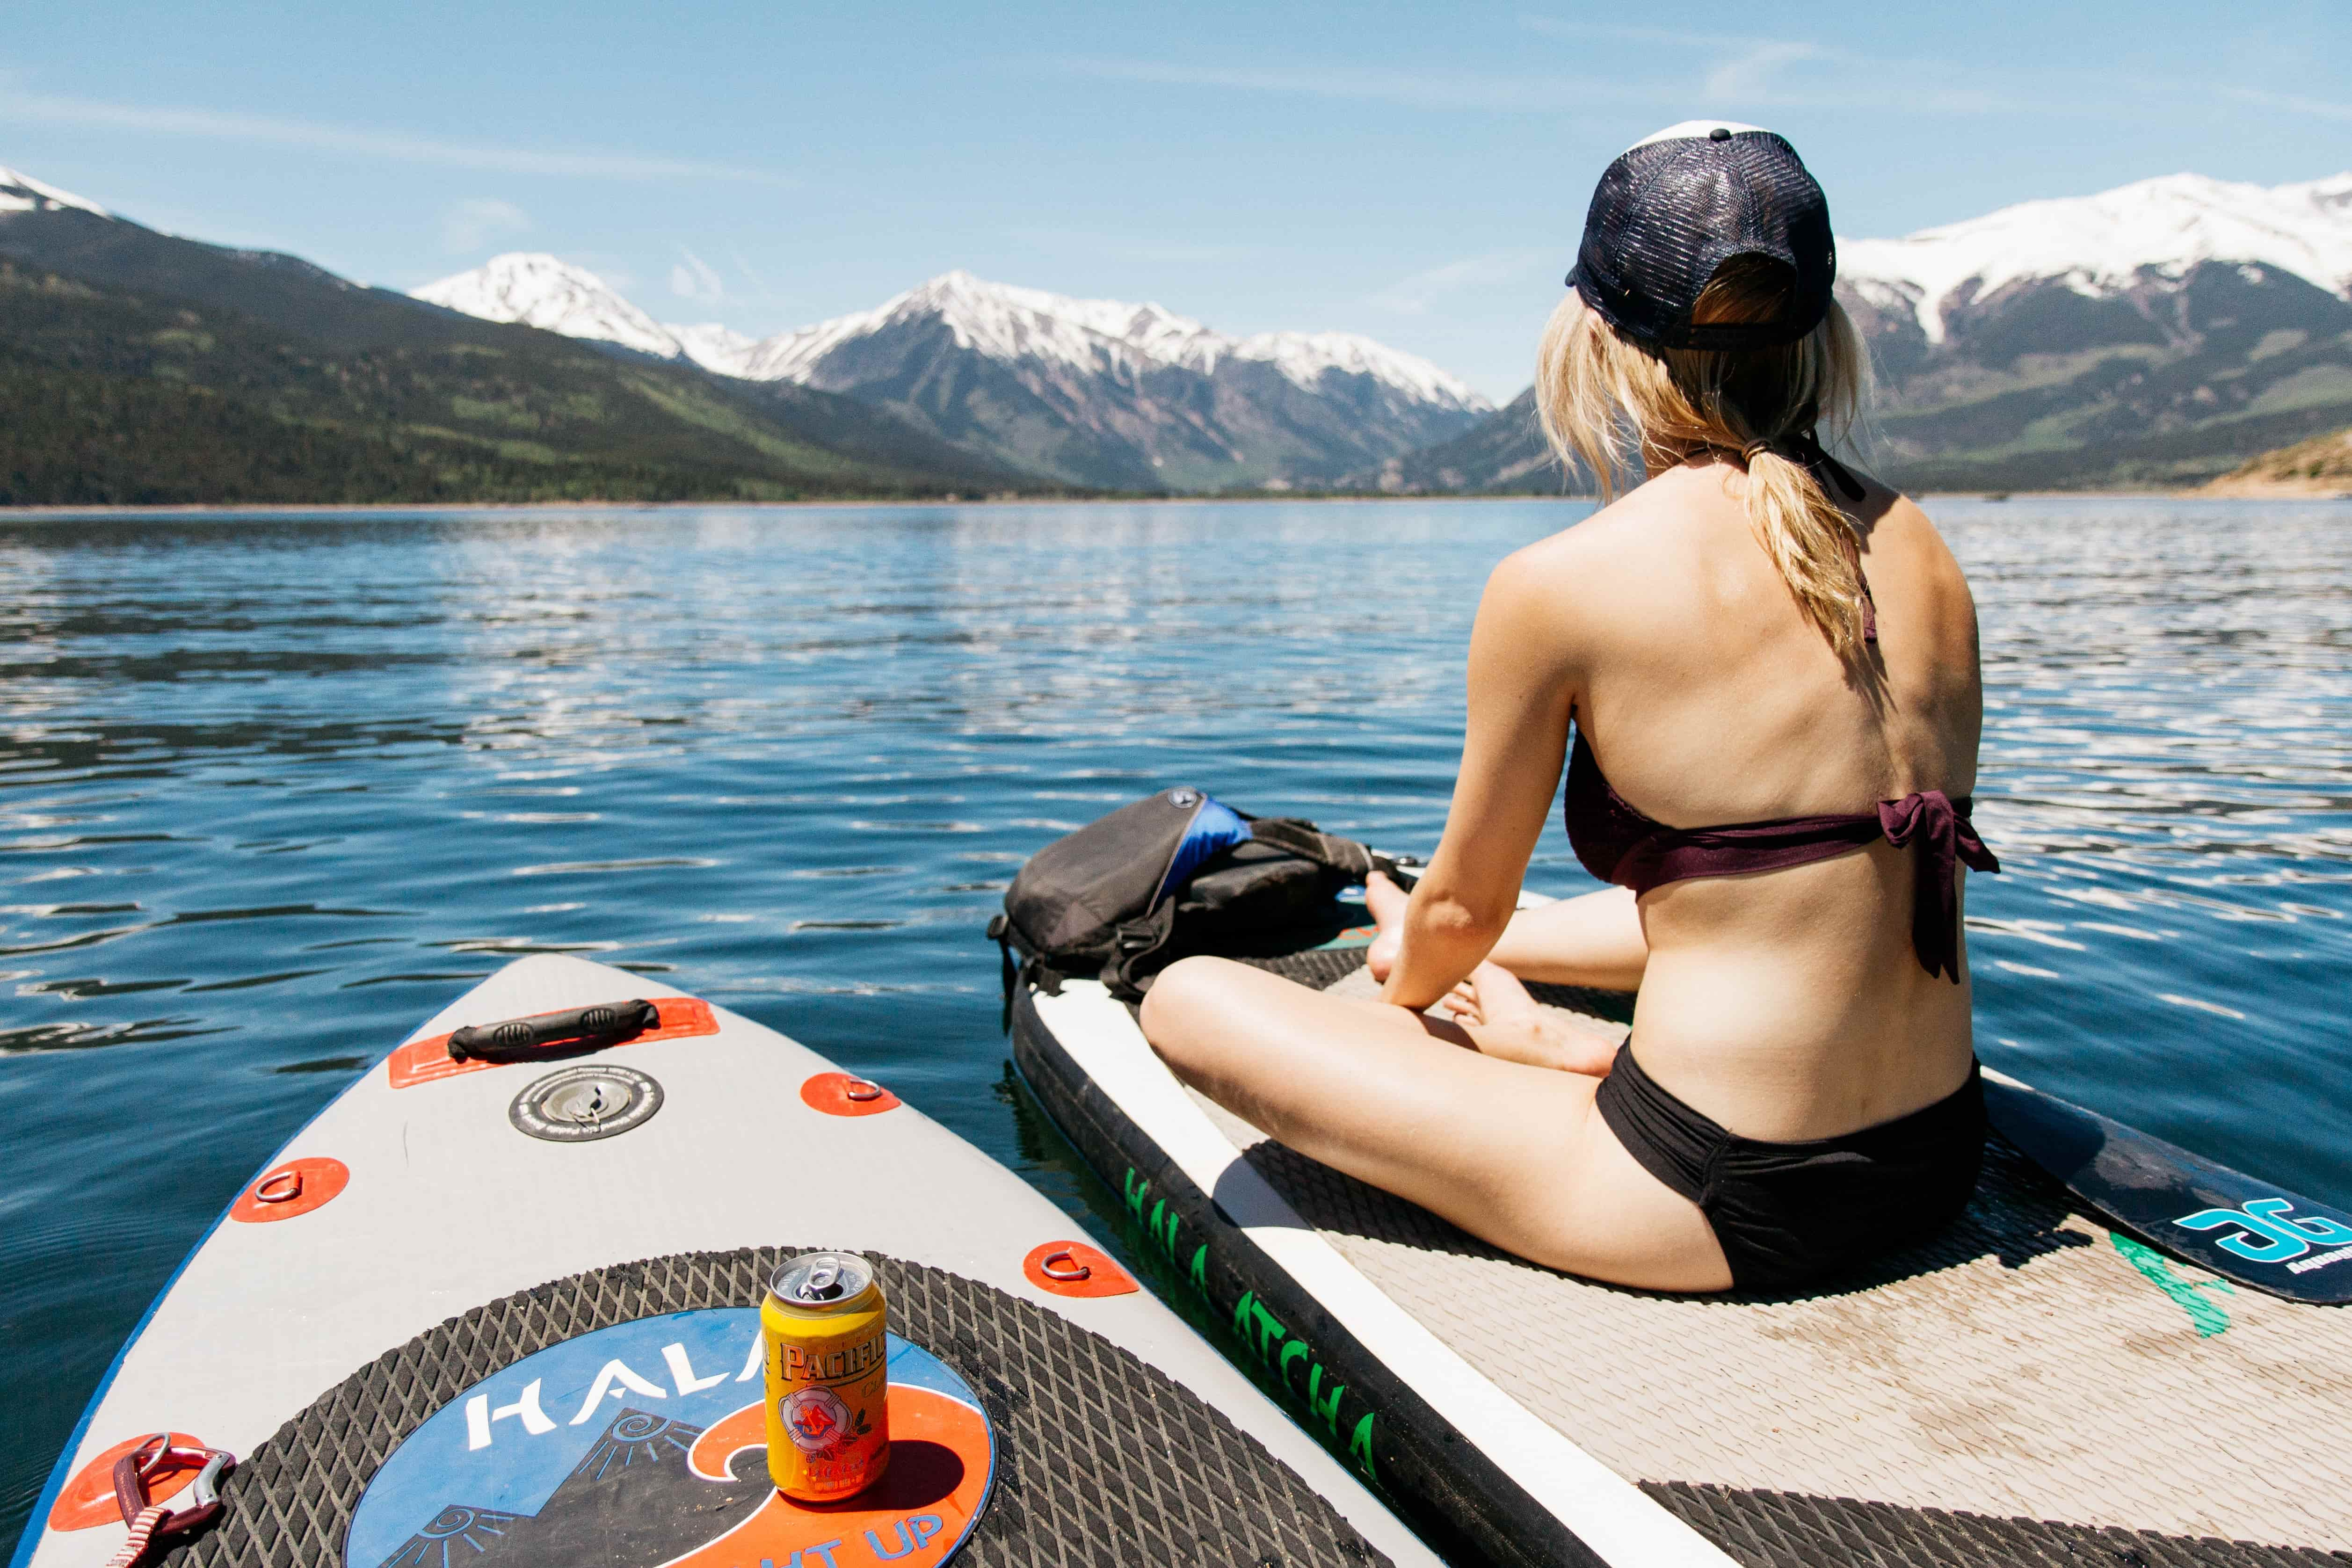 paddle surf chica